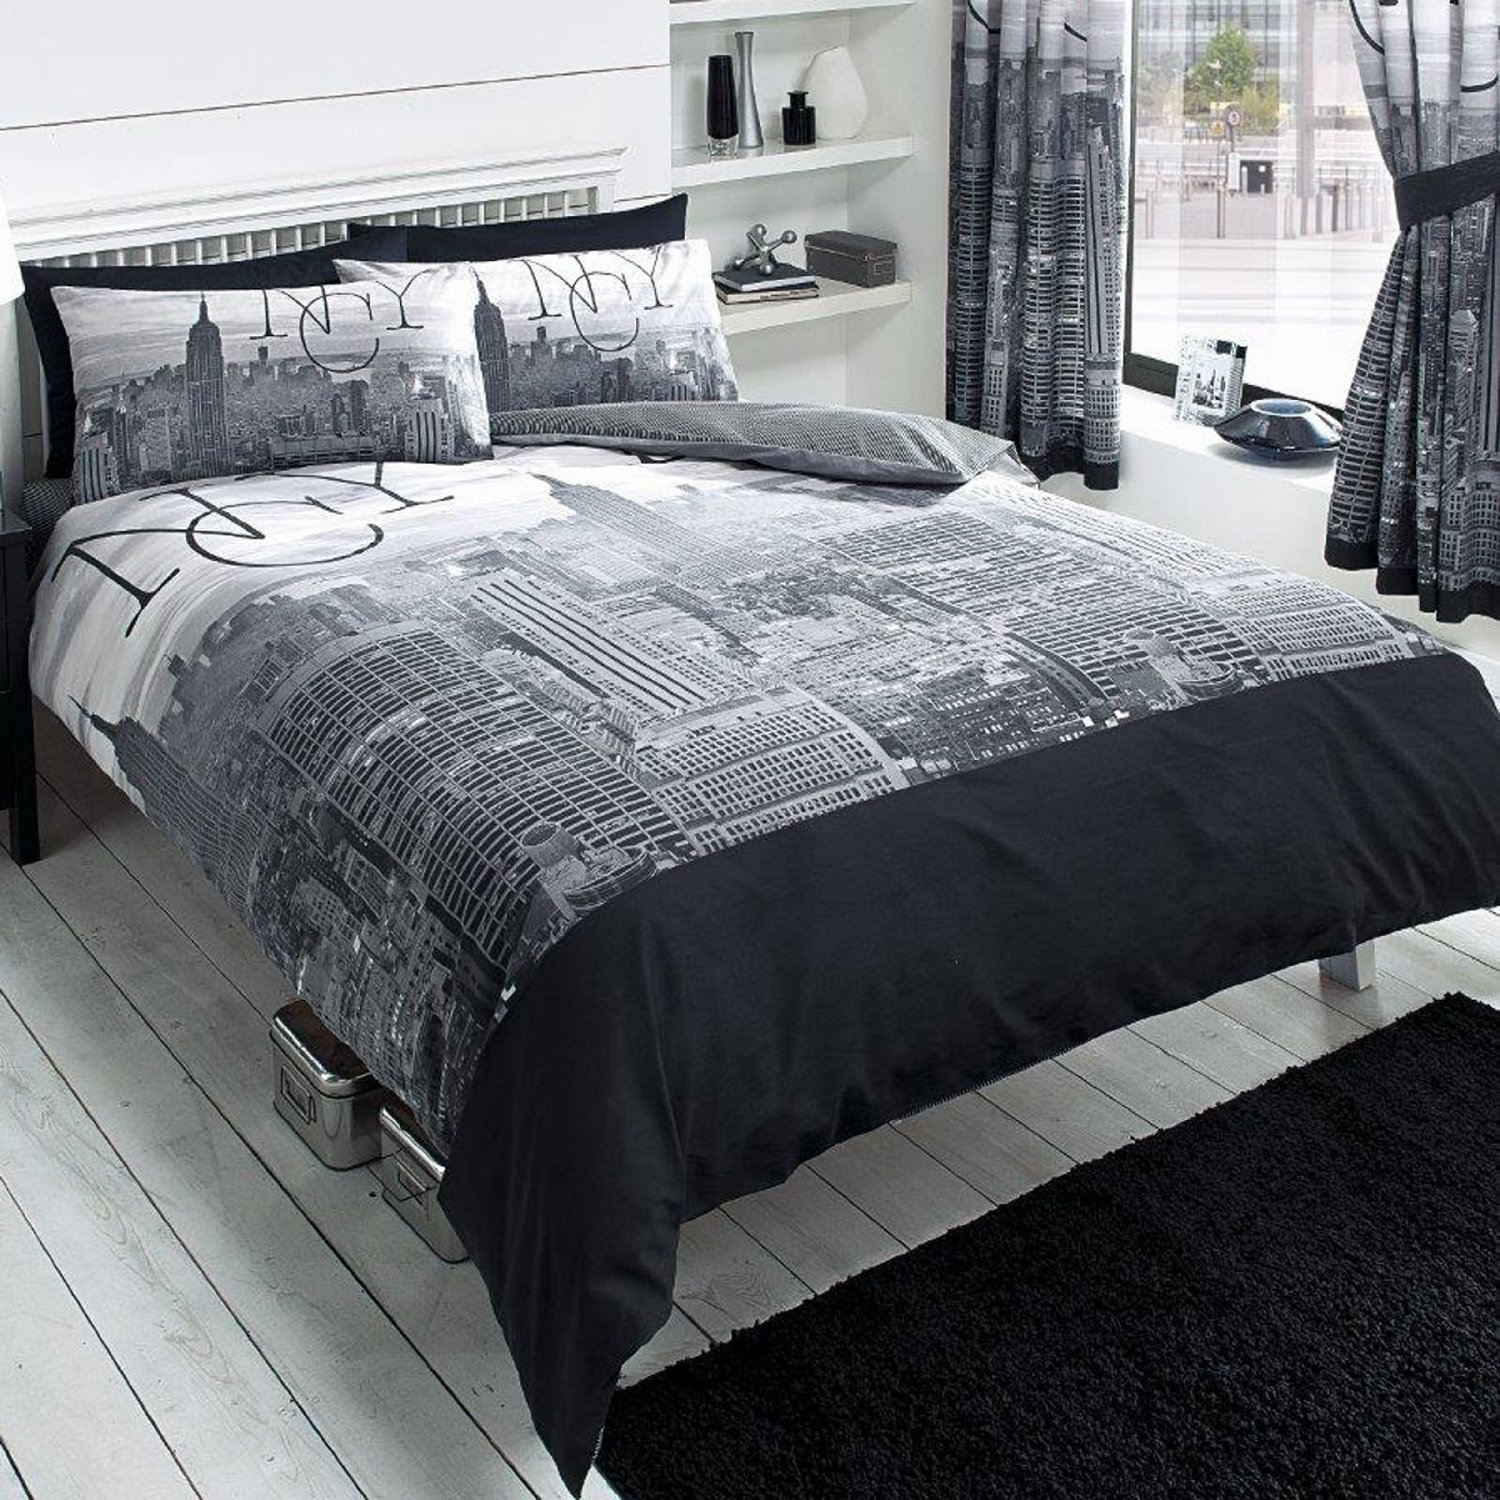 total fab new york city skyline bedding nyc themed bedroom ideas. Black Bedroom Furniture Sets. Home Design Ideas